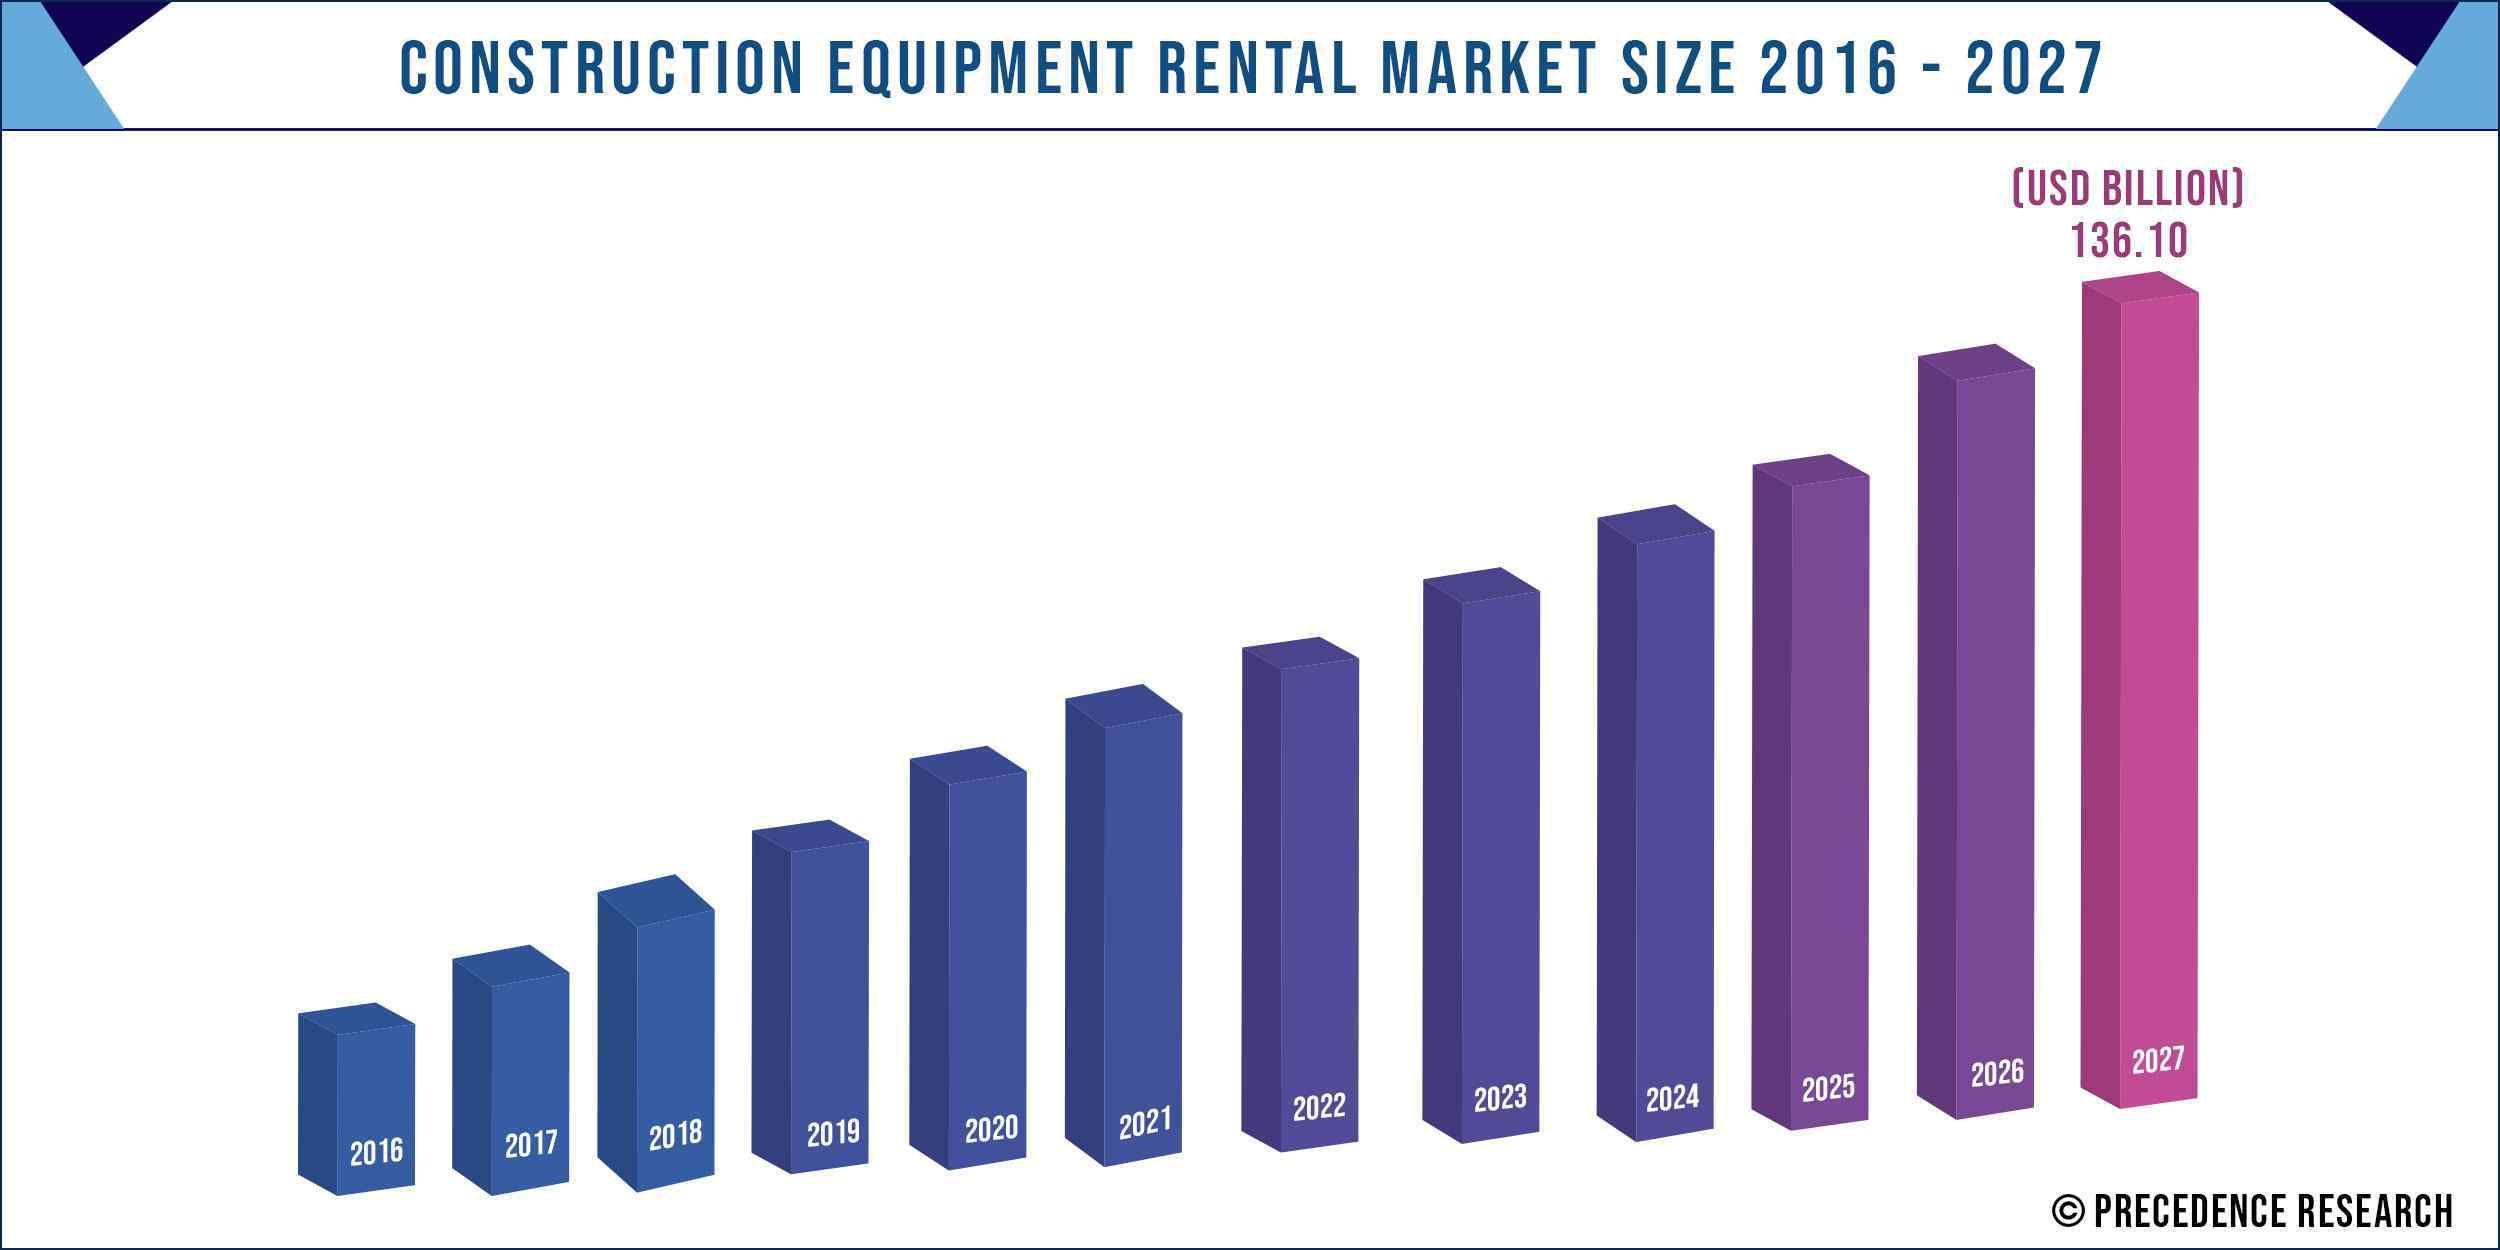 Construction Equipment Rental Market Size 2016 to 2027